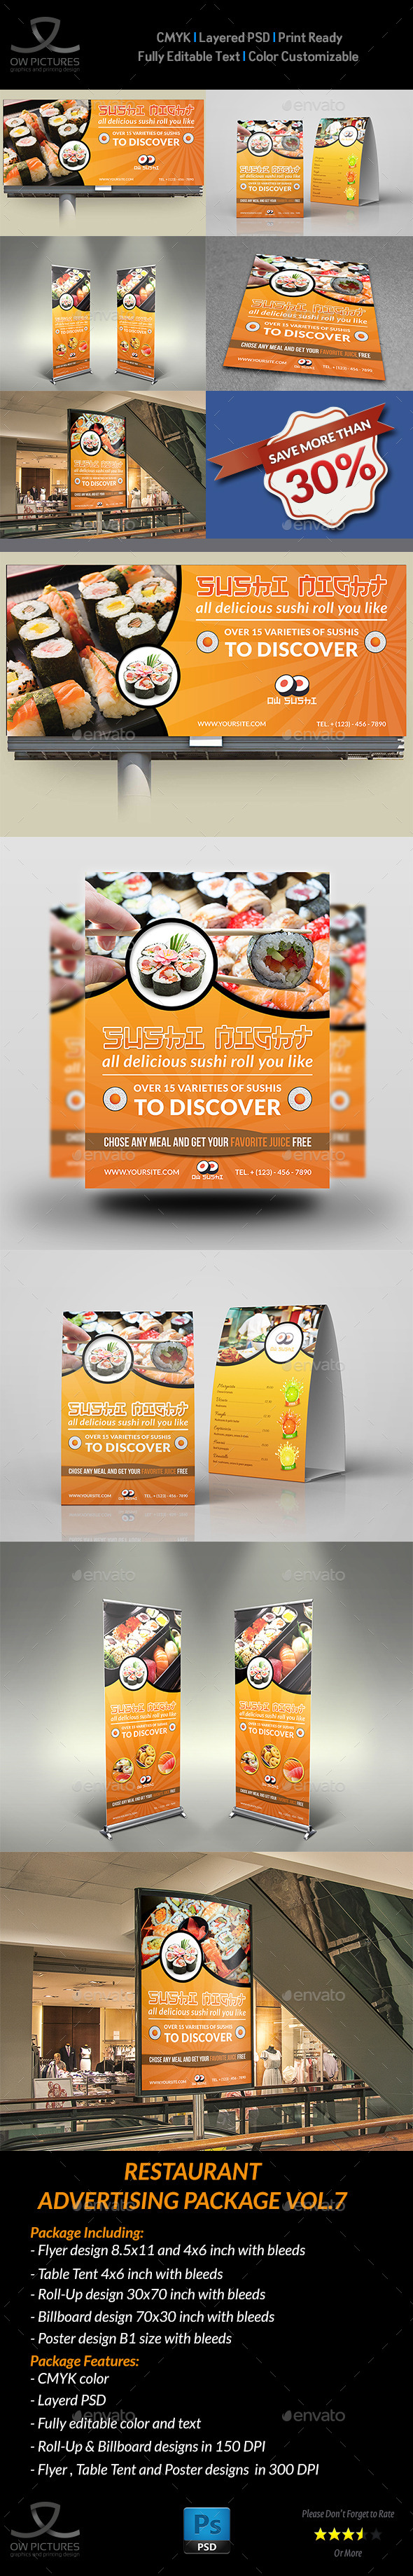 Restaurant Advertising Bundle Vol.7